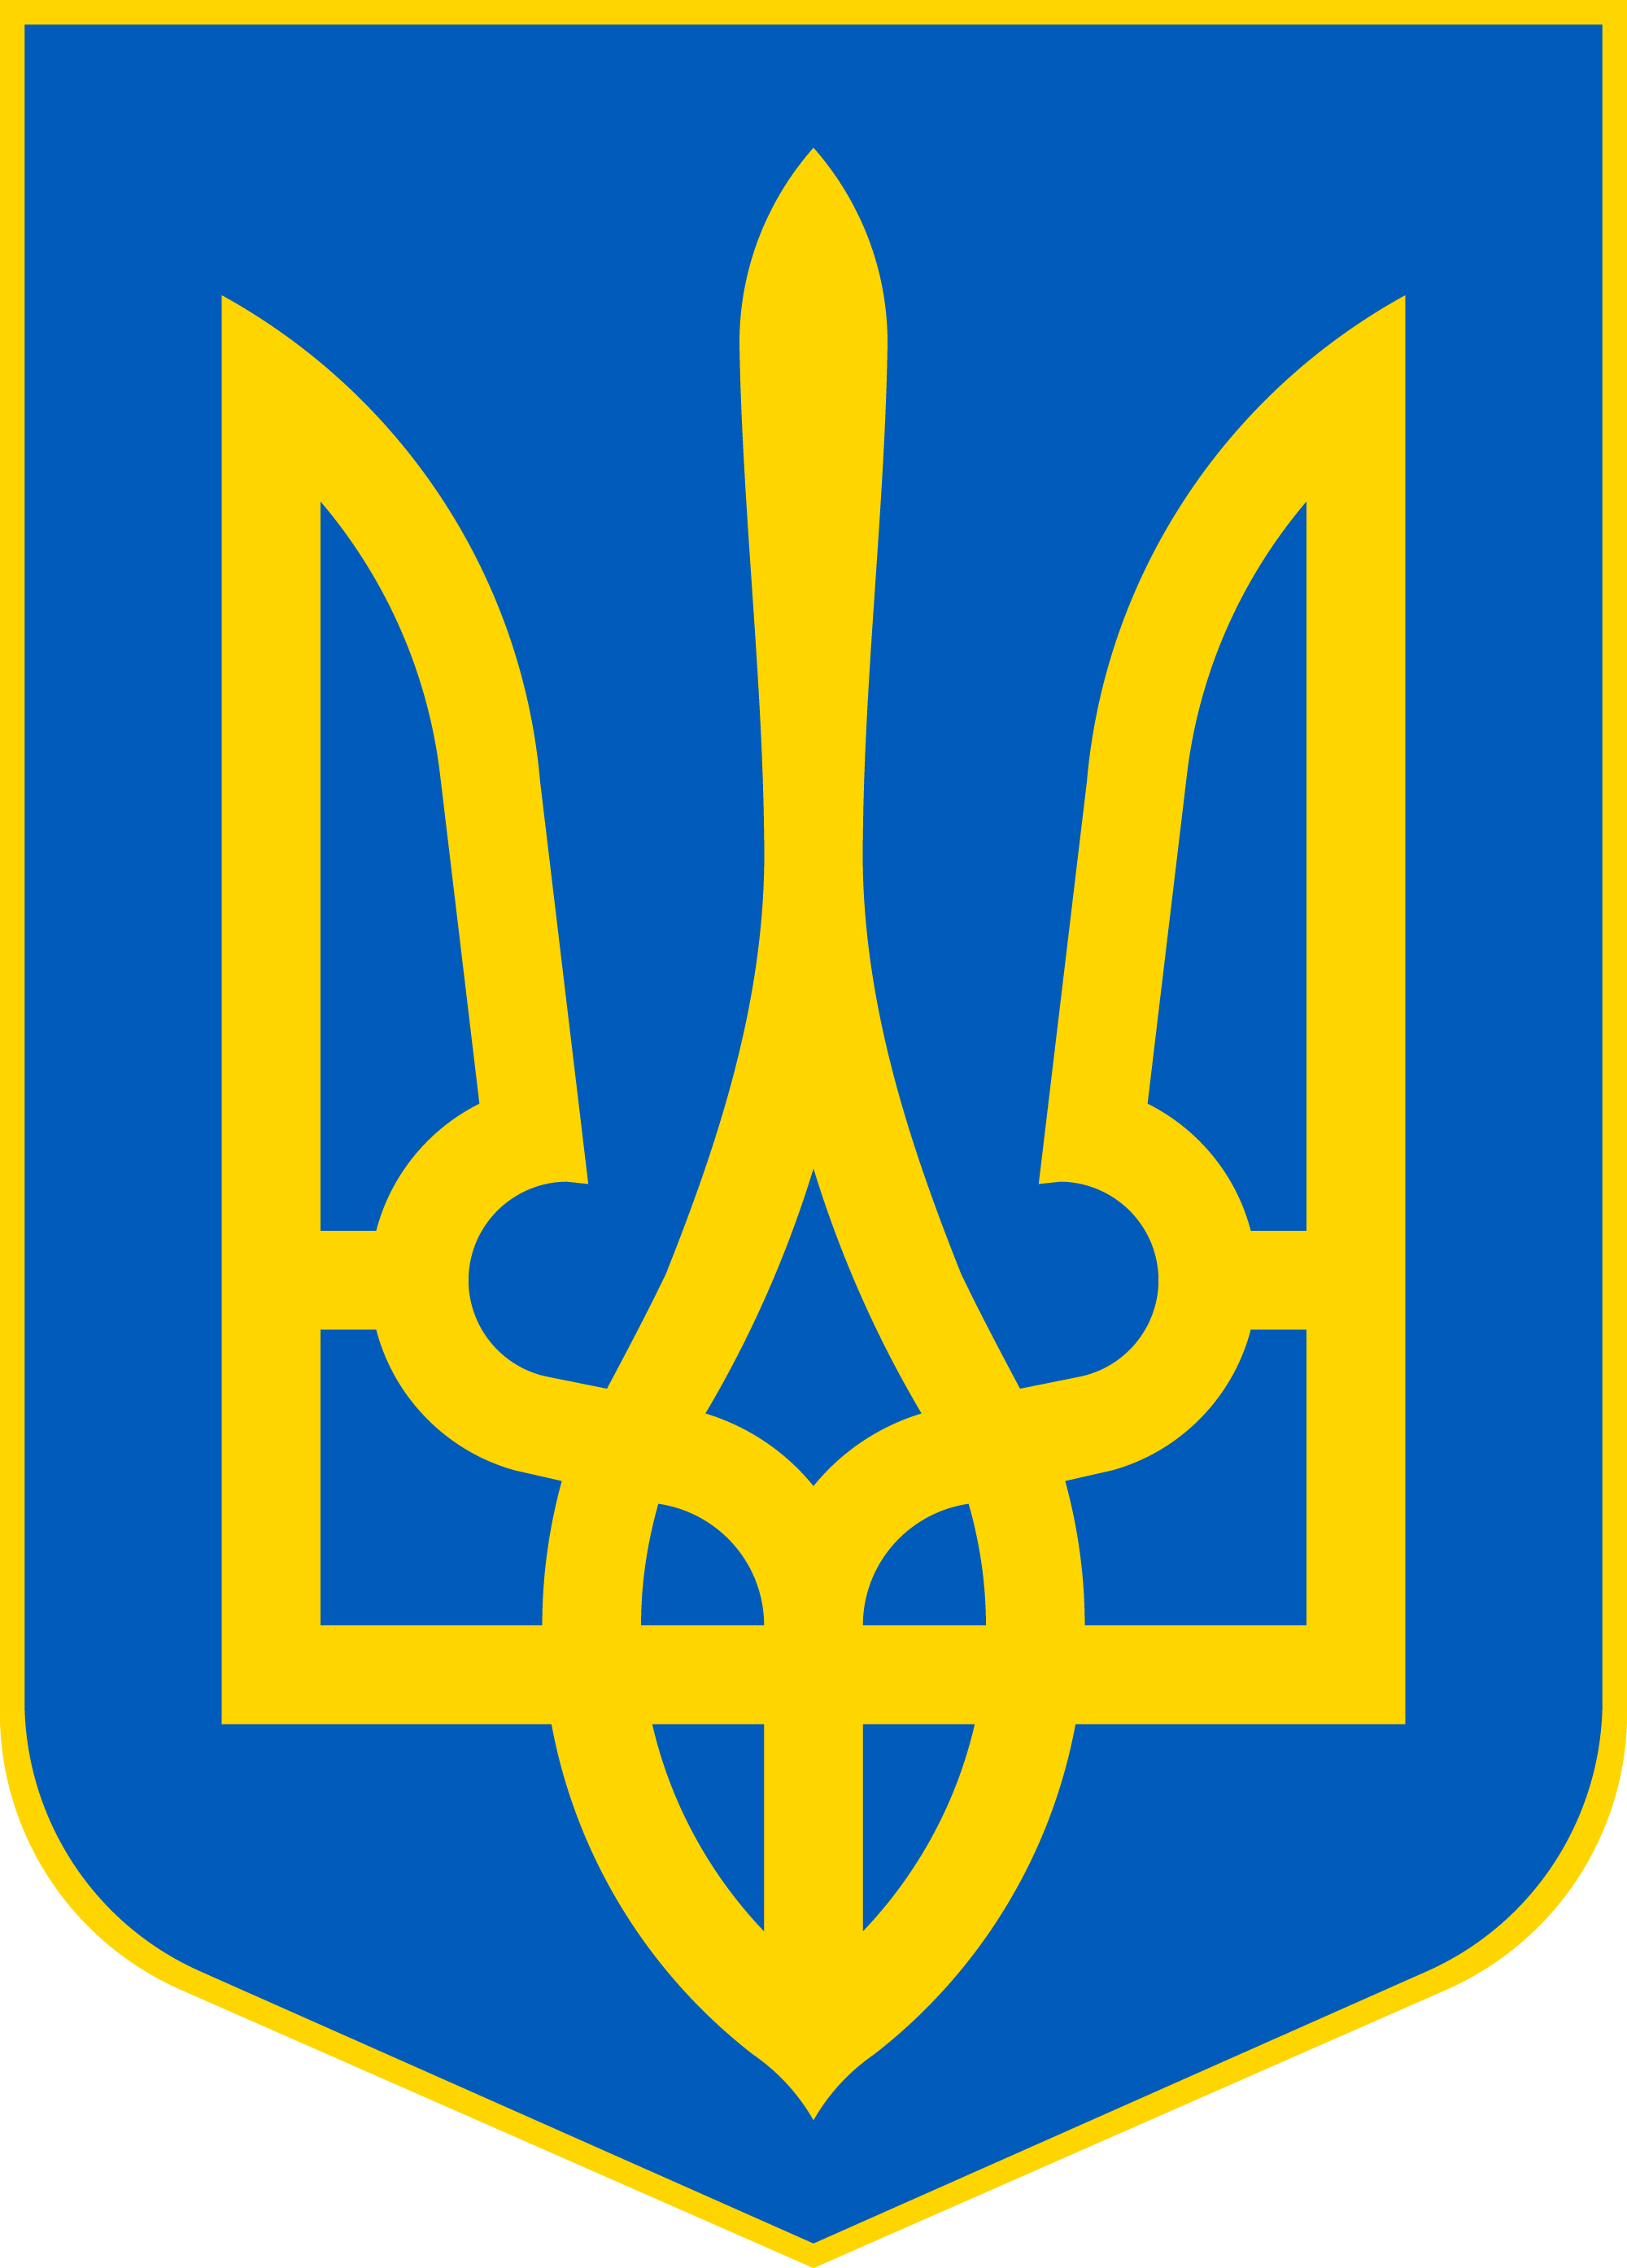 Coat_of_arms_of_the_Ukraine_1991